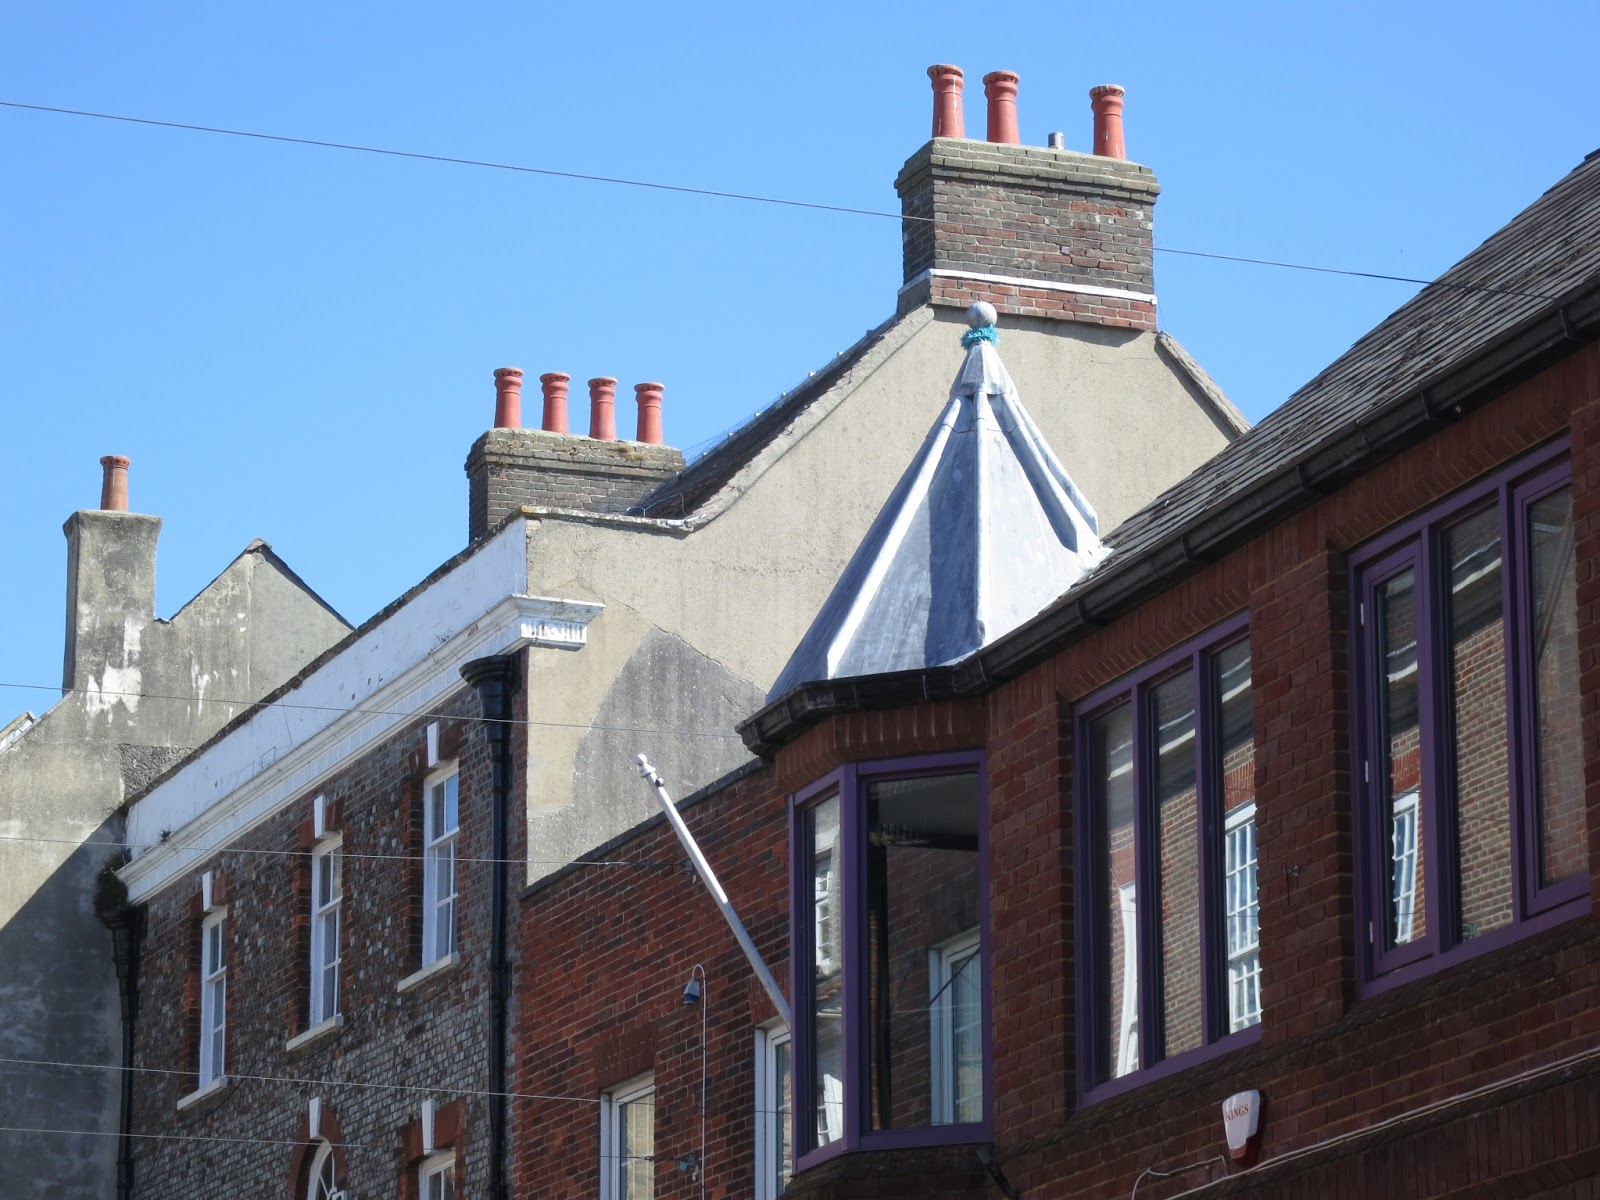 Three sets of chimneys on buildings with windows in Dorchester, Dorset.